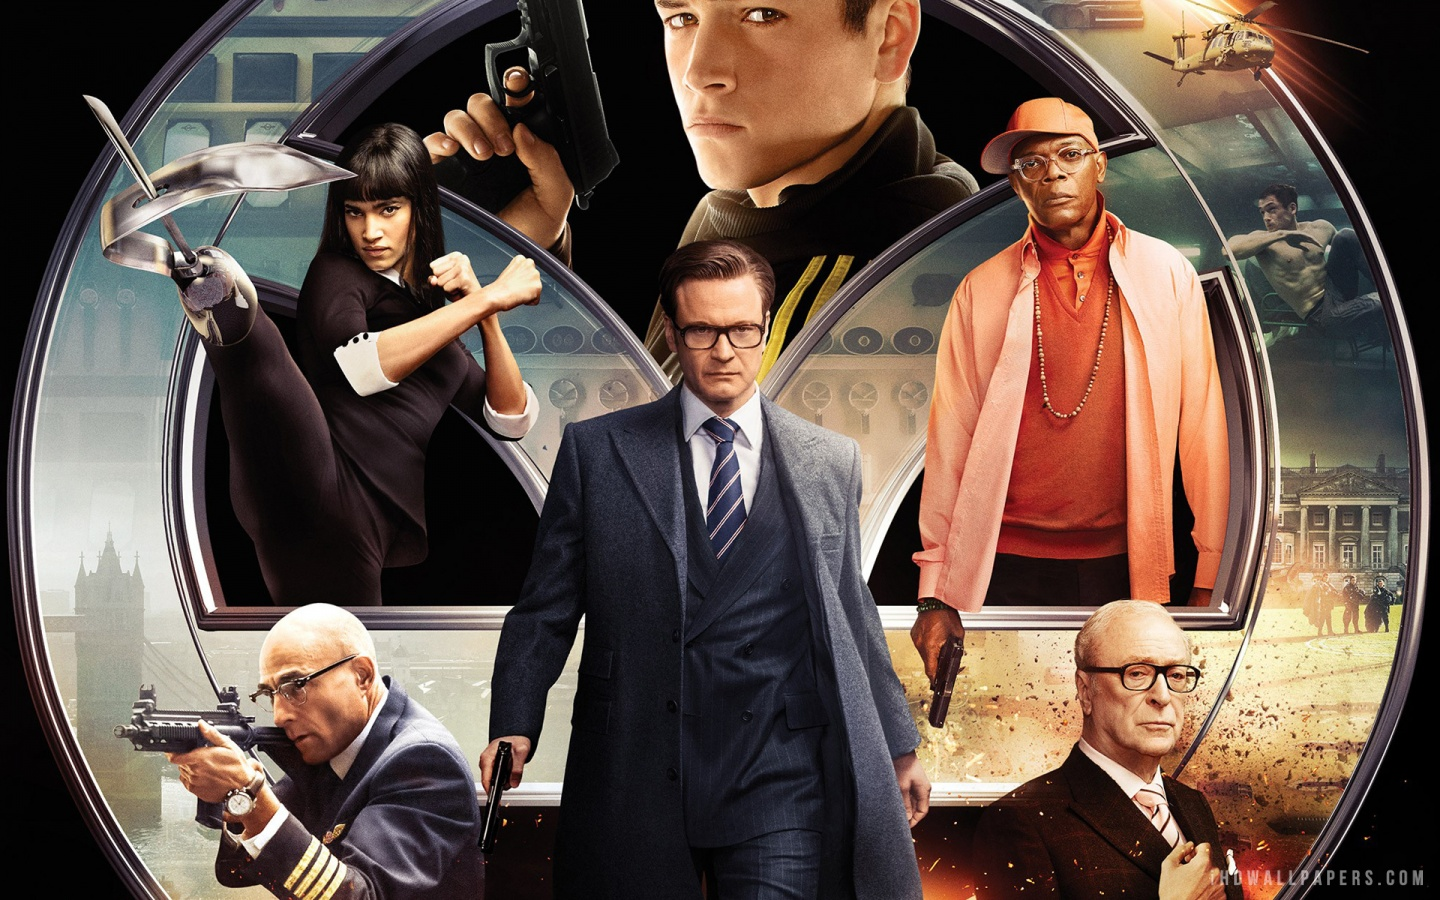 """Kingsman:"""" Ruler of the Modern Action Sequence   The PILOT Magazine"""